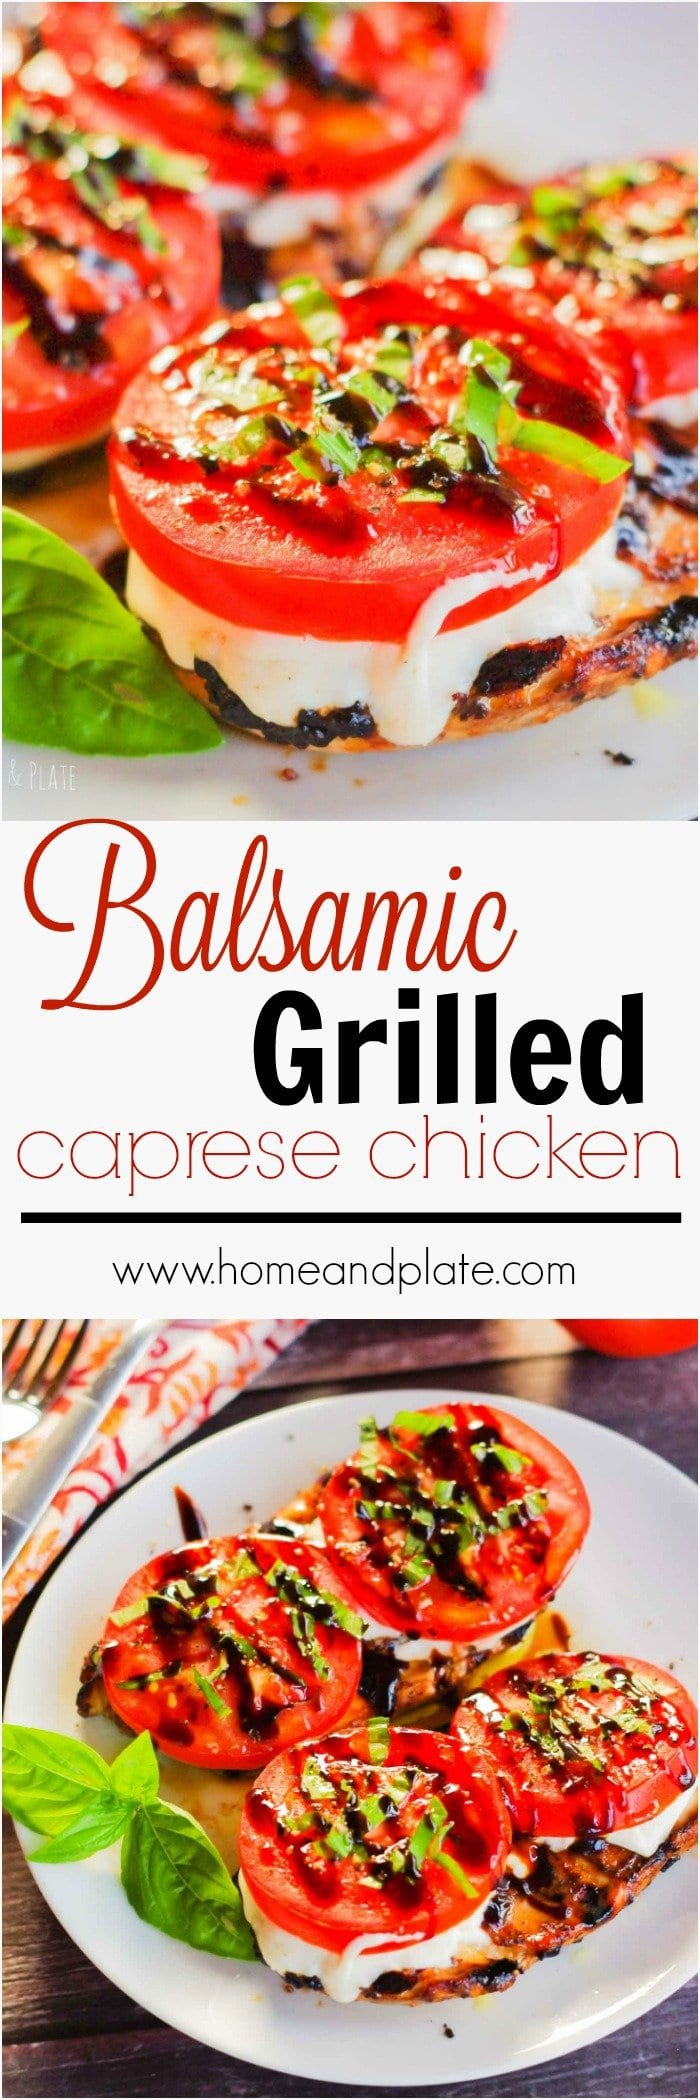 Balsamic Grilled Caprese Chicken   www.homeandplate.com   Fresh tomatoes, basil and mozzarella top these balsamic vinaigrette marinated chicken breasts. This delicious grilled chicken recipe is on the table in under 30 minutes.